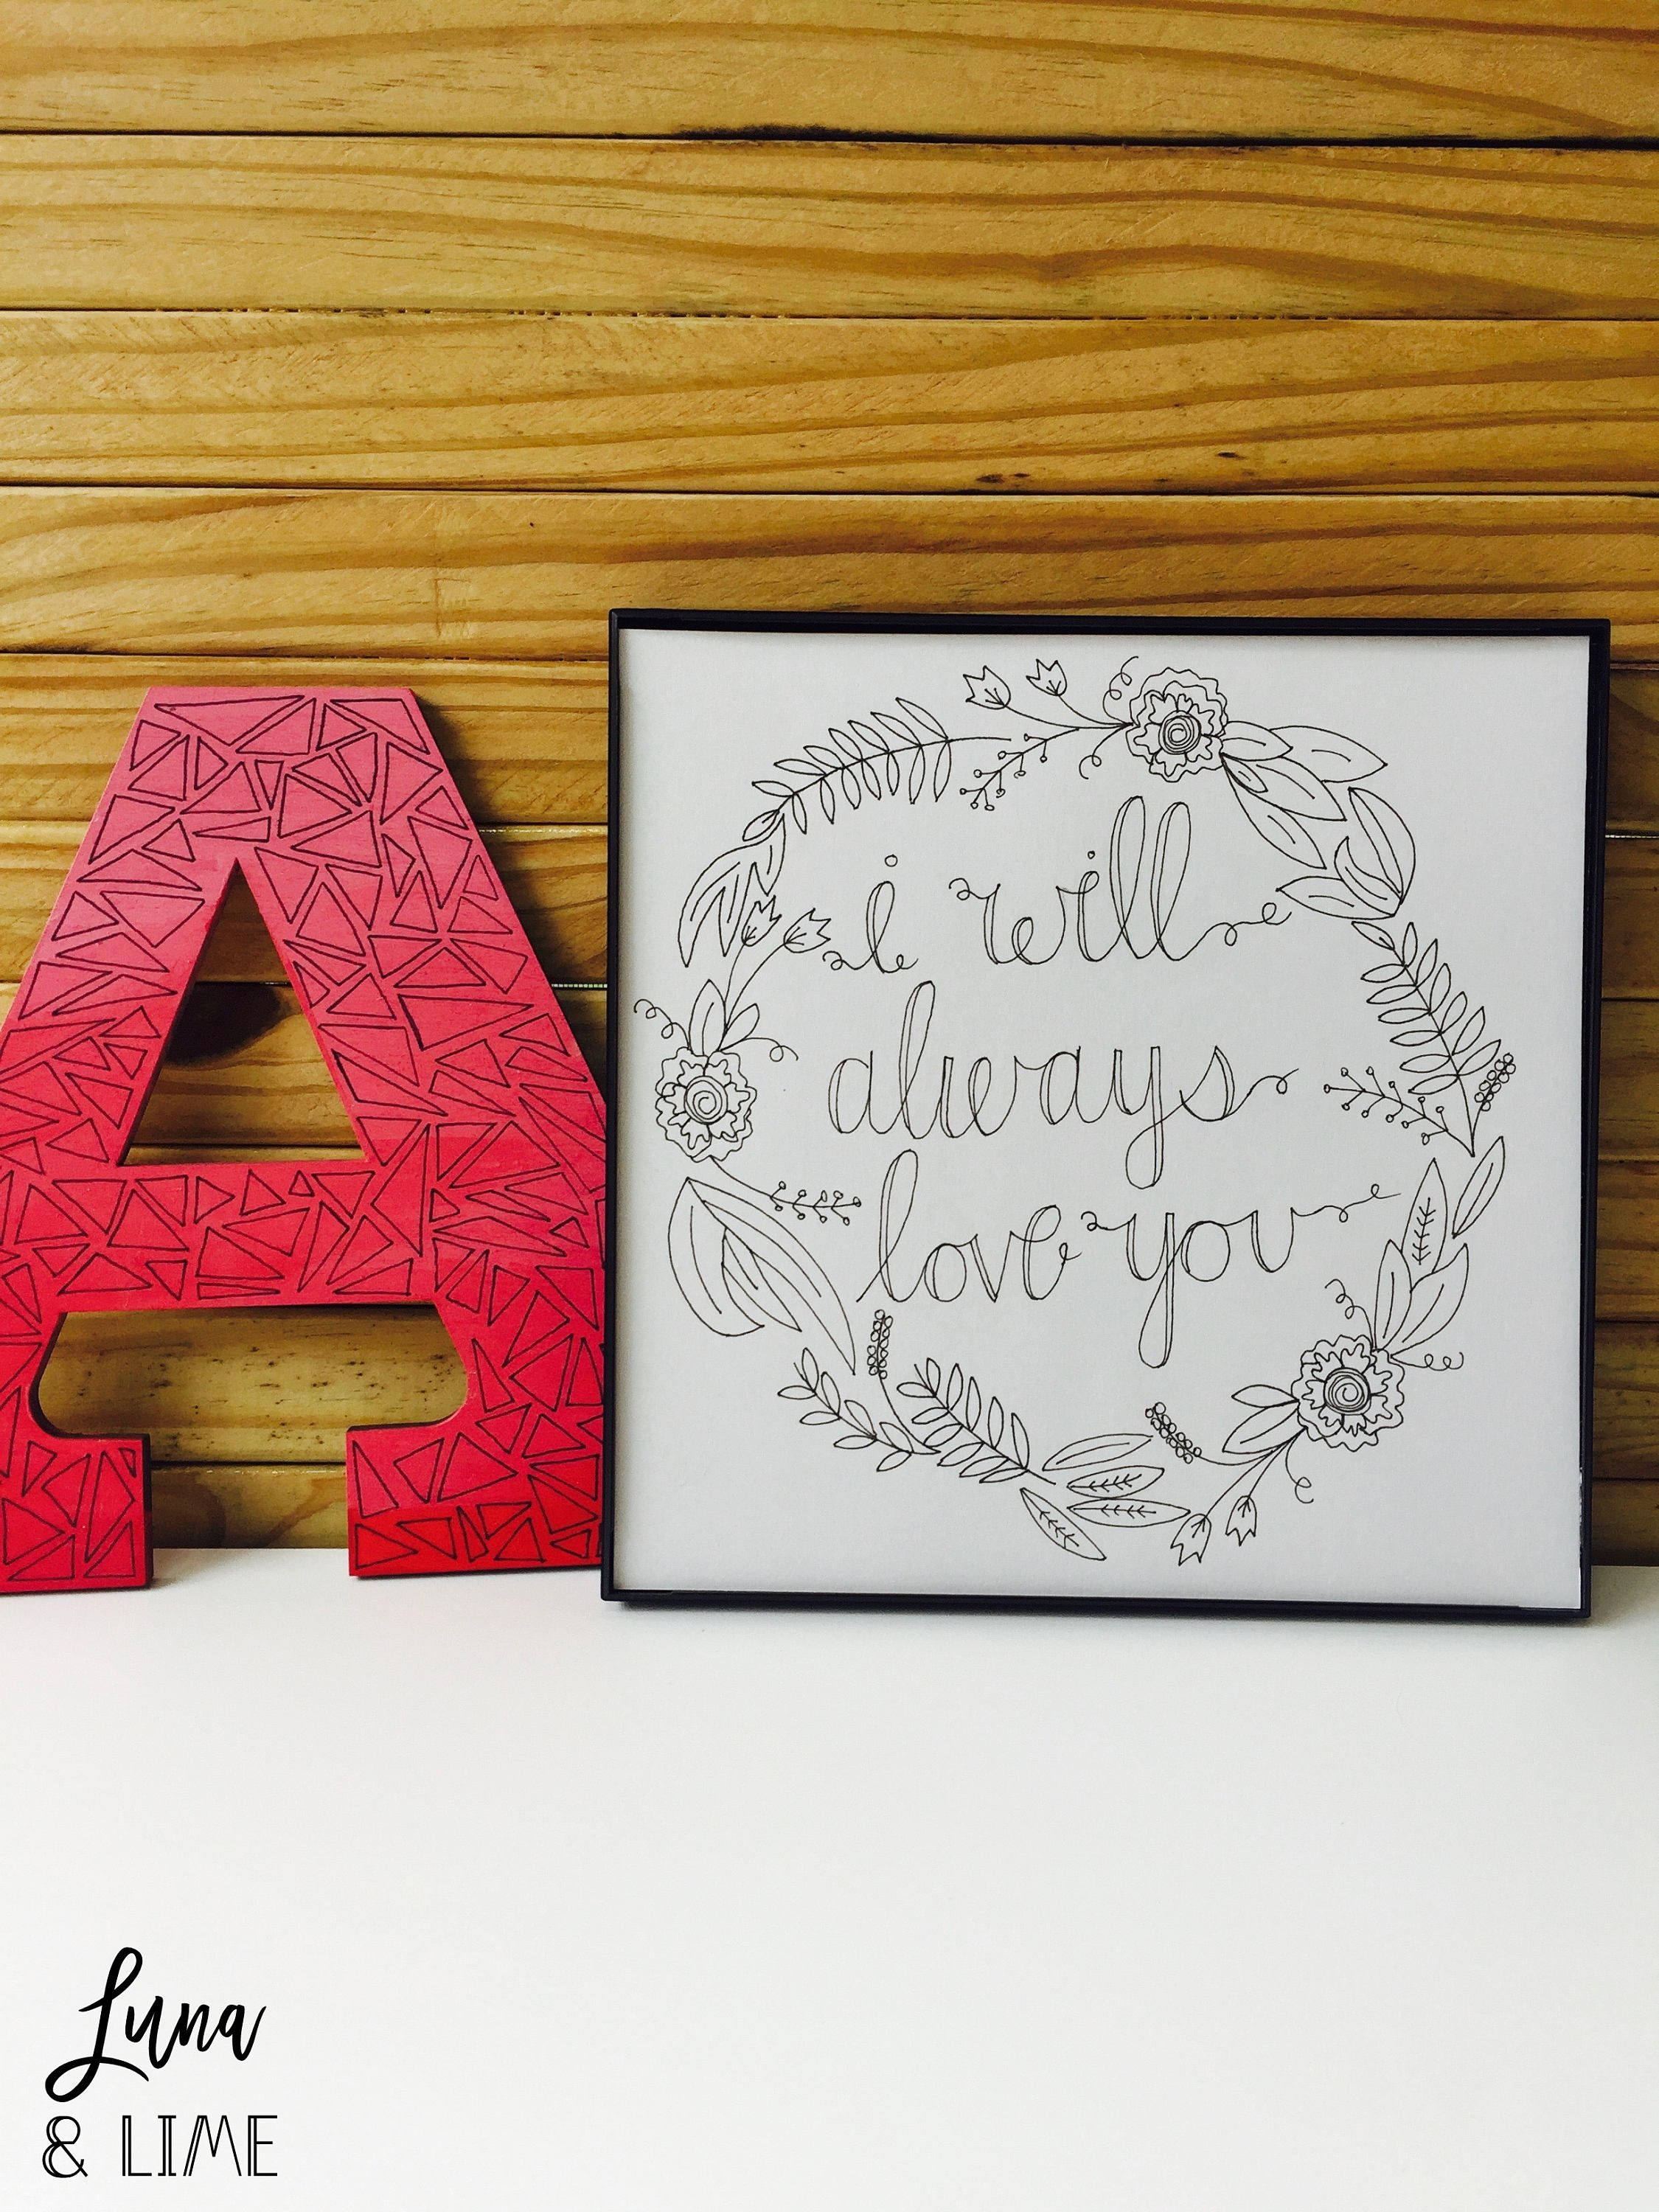 I will always love you print whitney houston gift paper i will always love you print whitney houston gift paper anniversary gifts for solutioingenieria Images